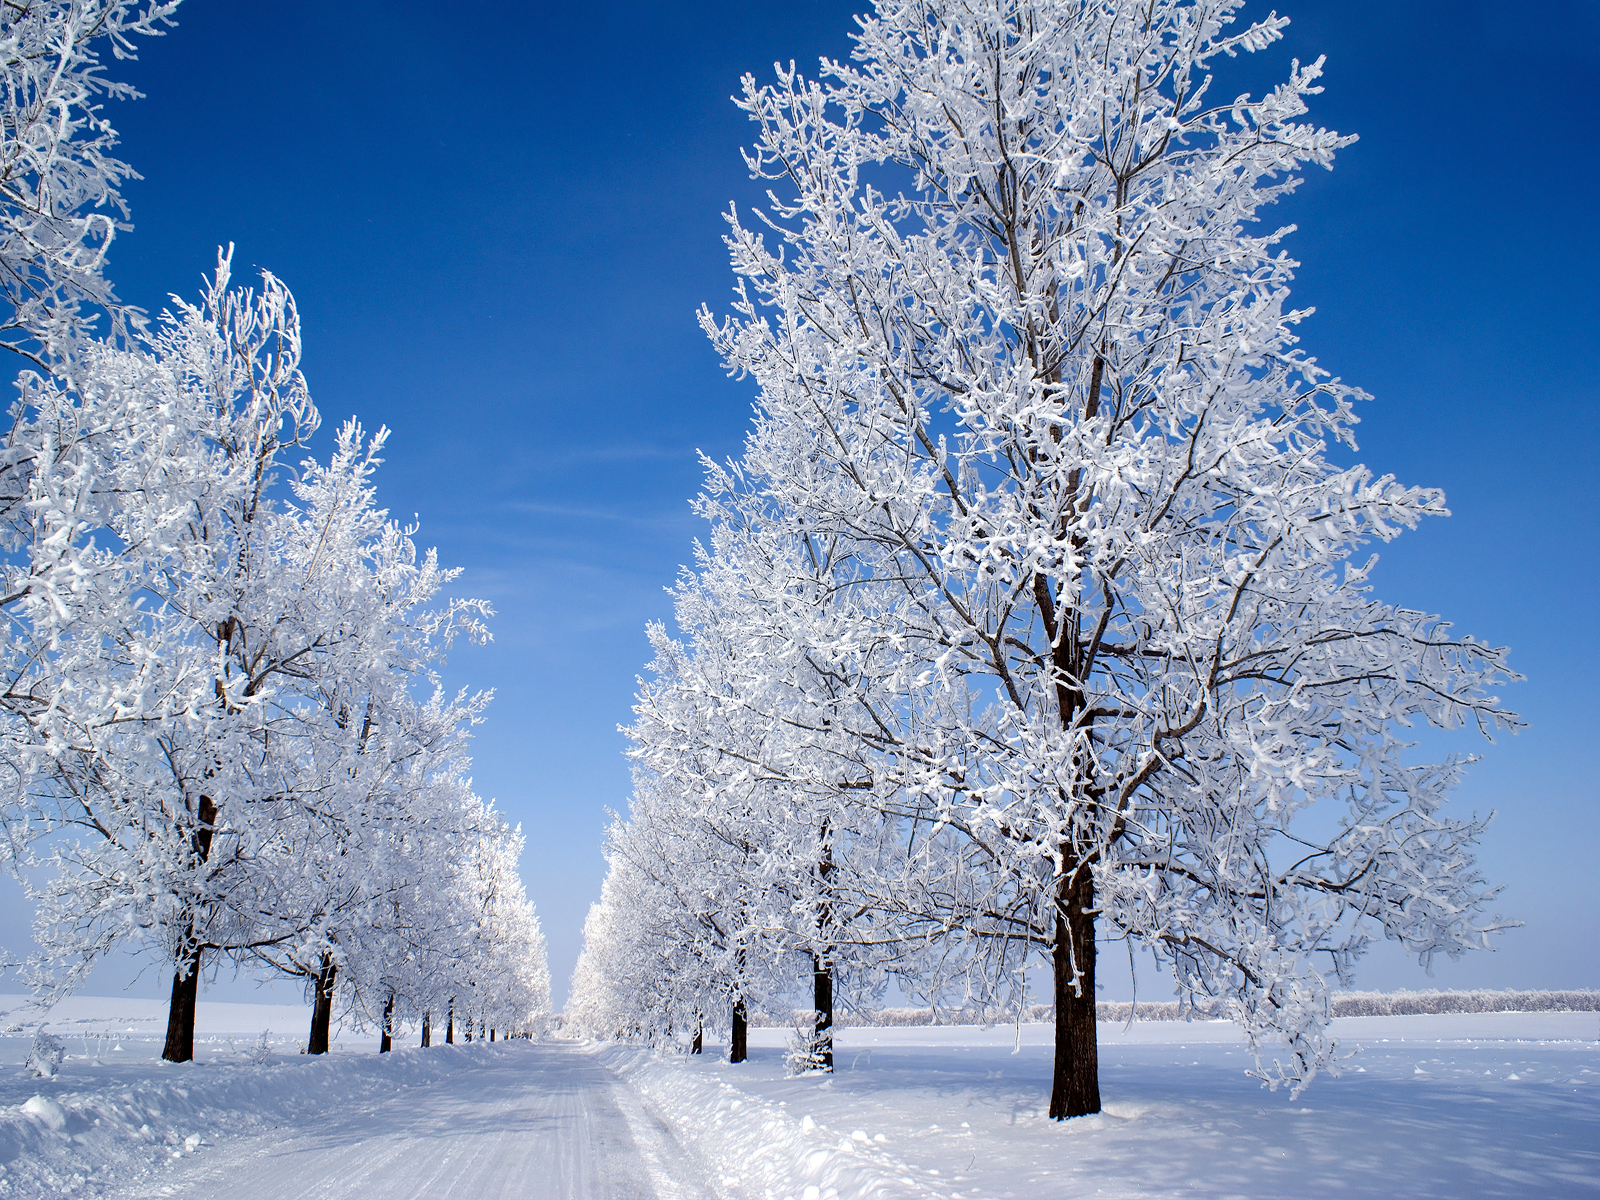 winter snow wallpaper 1600x1200